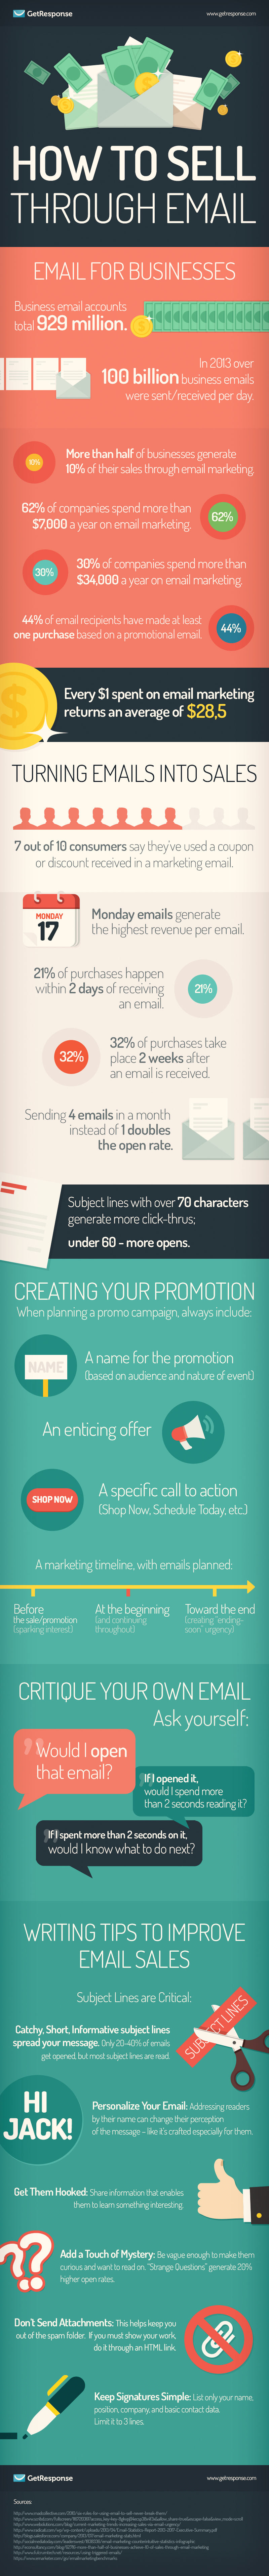 Email chain. - Infographic - How To Sell Through Email